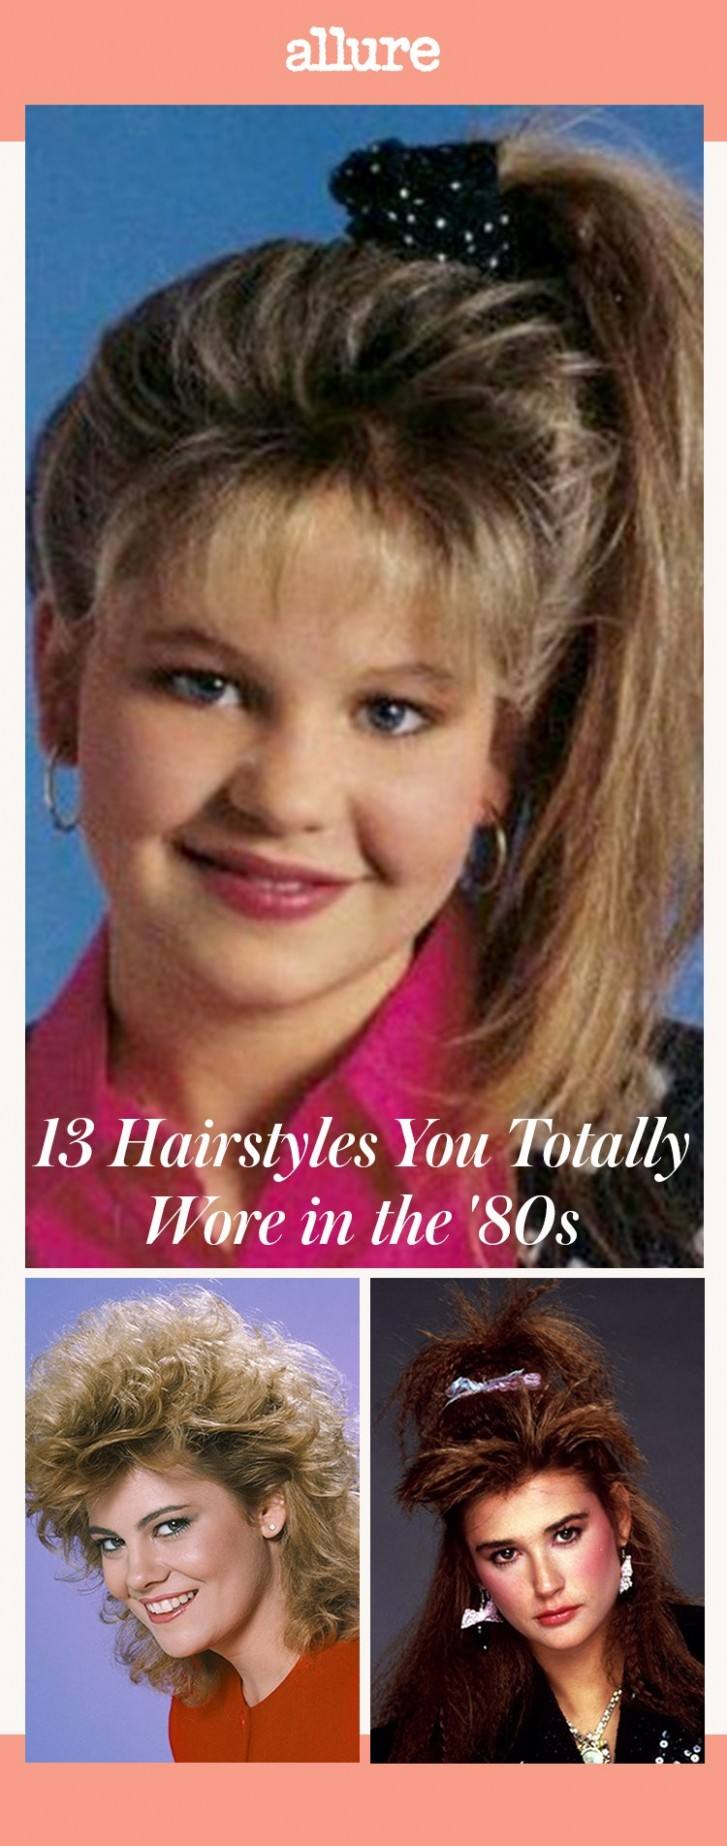 11 Hairstyles You Totally Wore In The '11s Allure 80S Curly Hairstyles